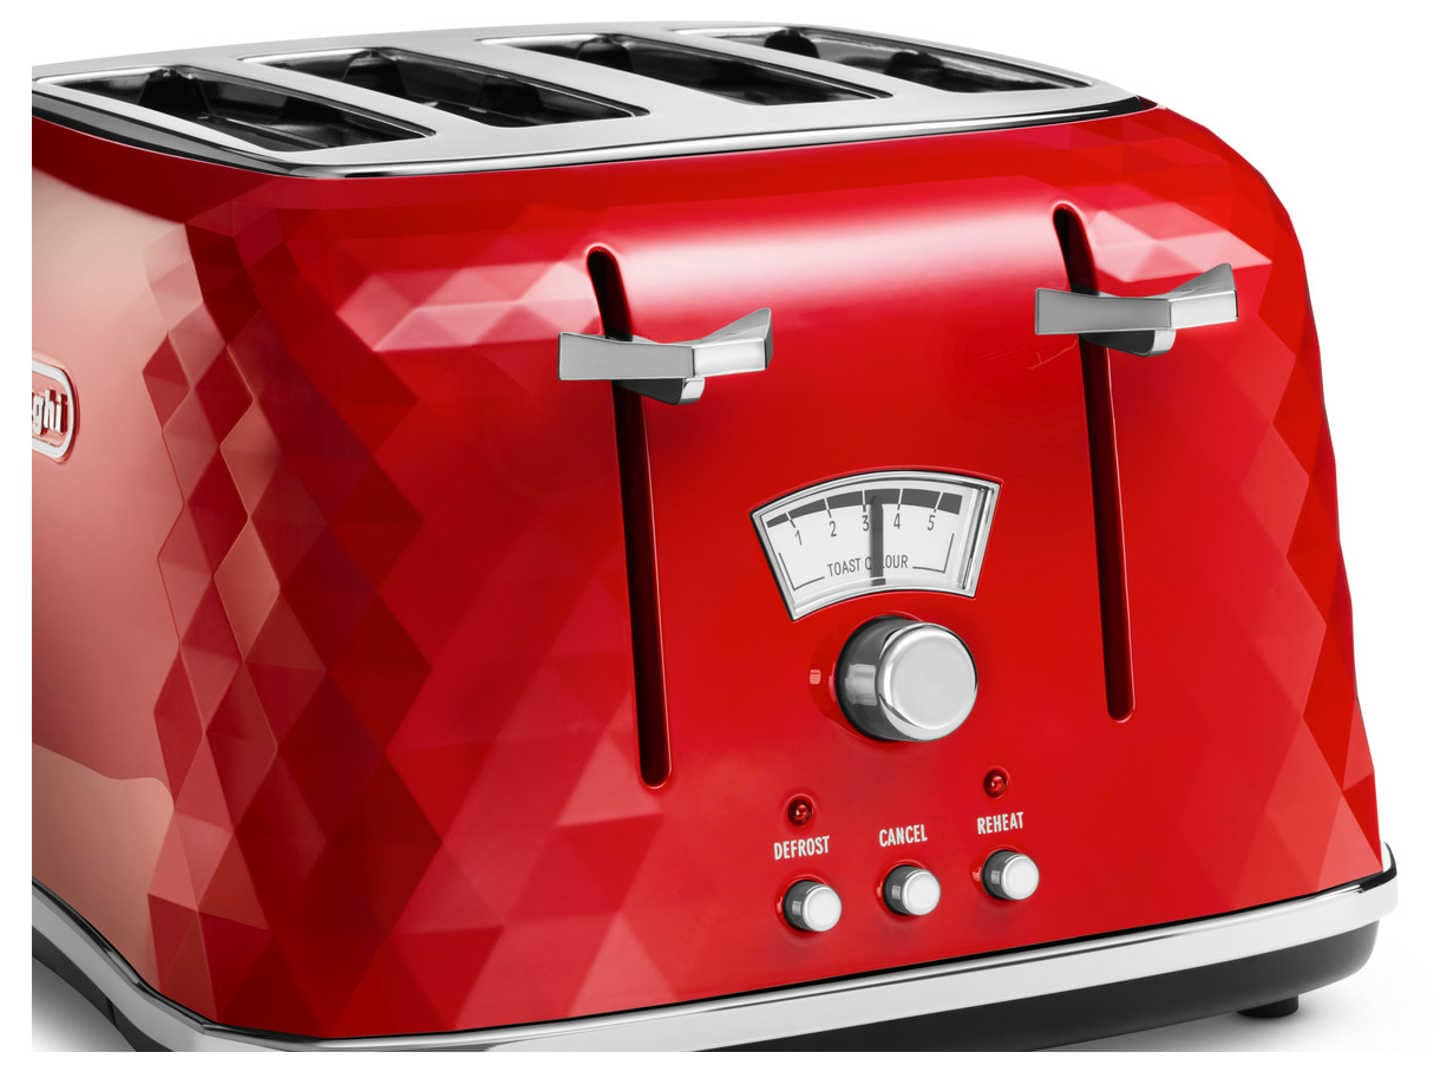 Brilliante 4 Slice Toaster - Red CTJ 4003.R